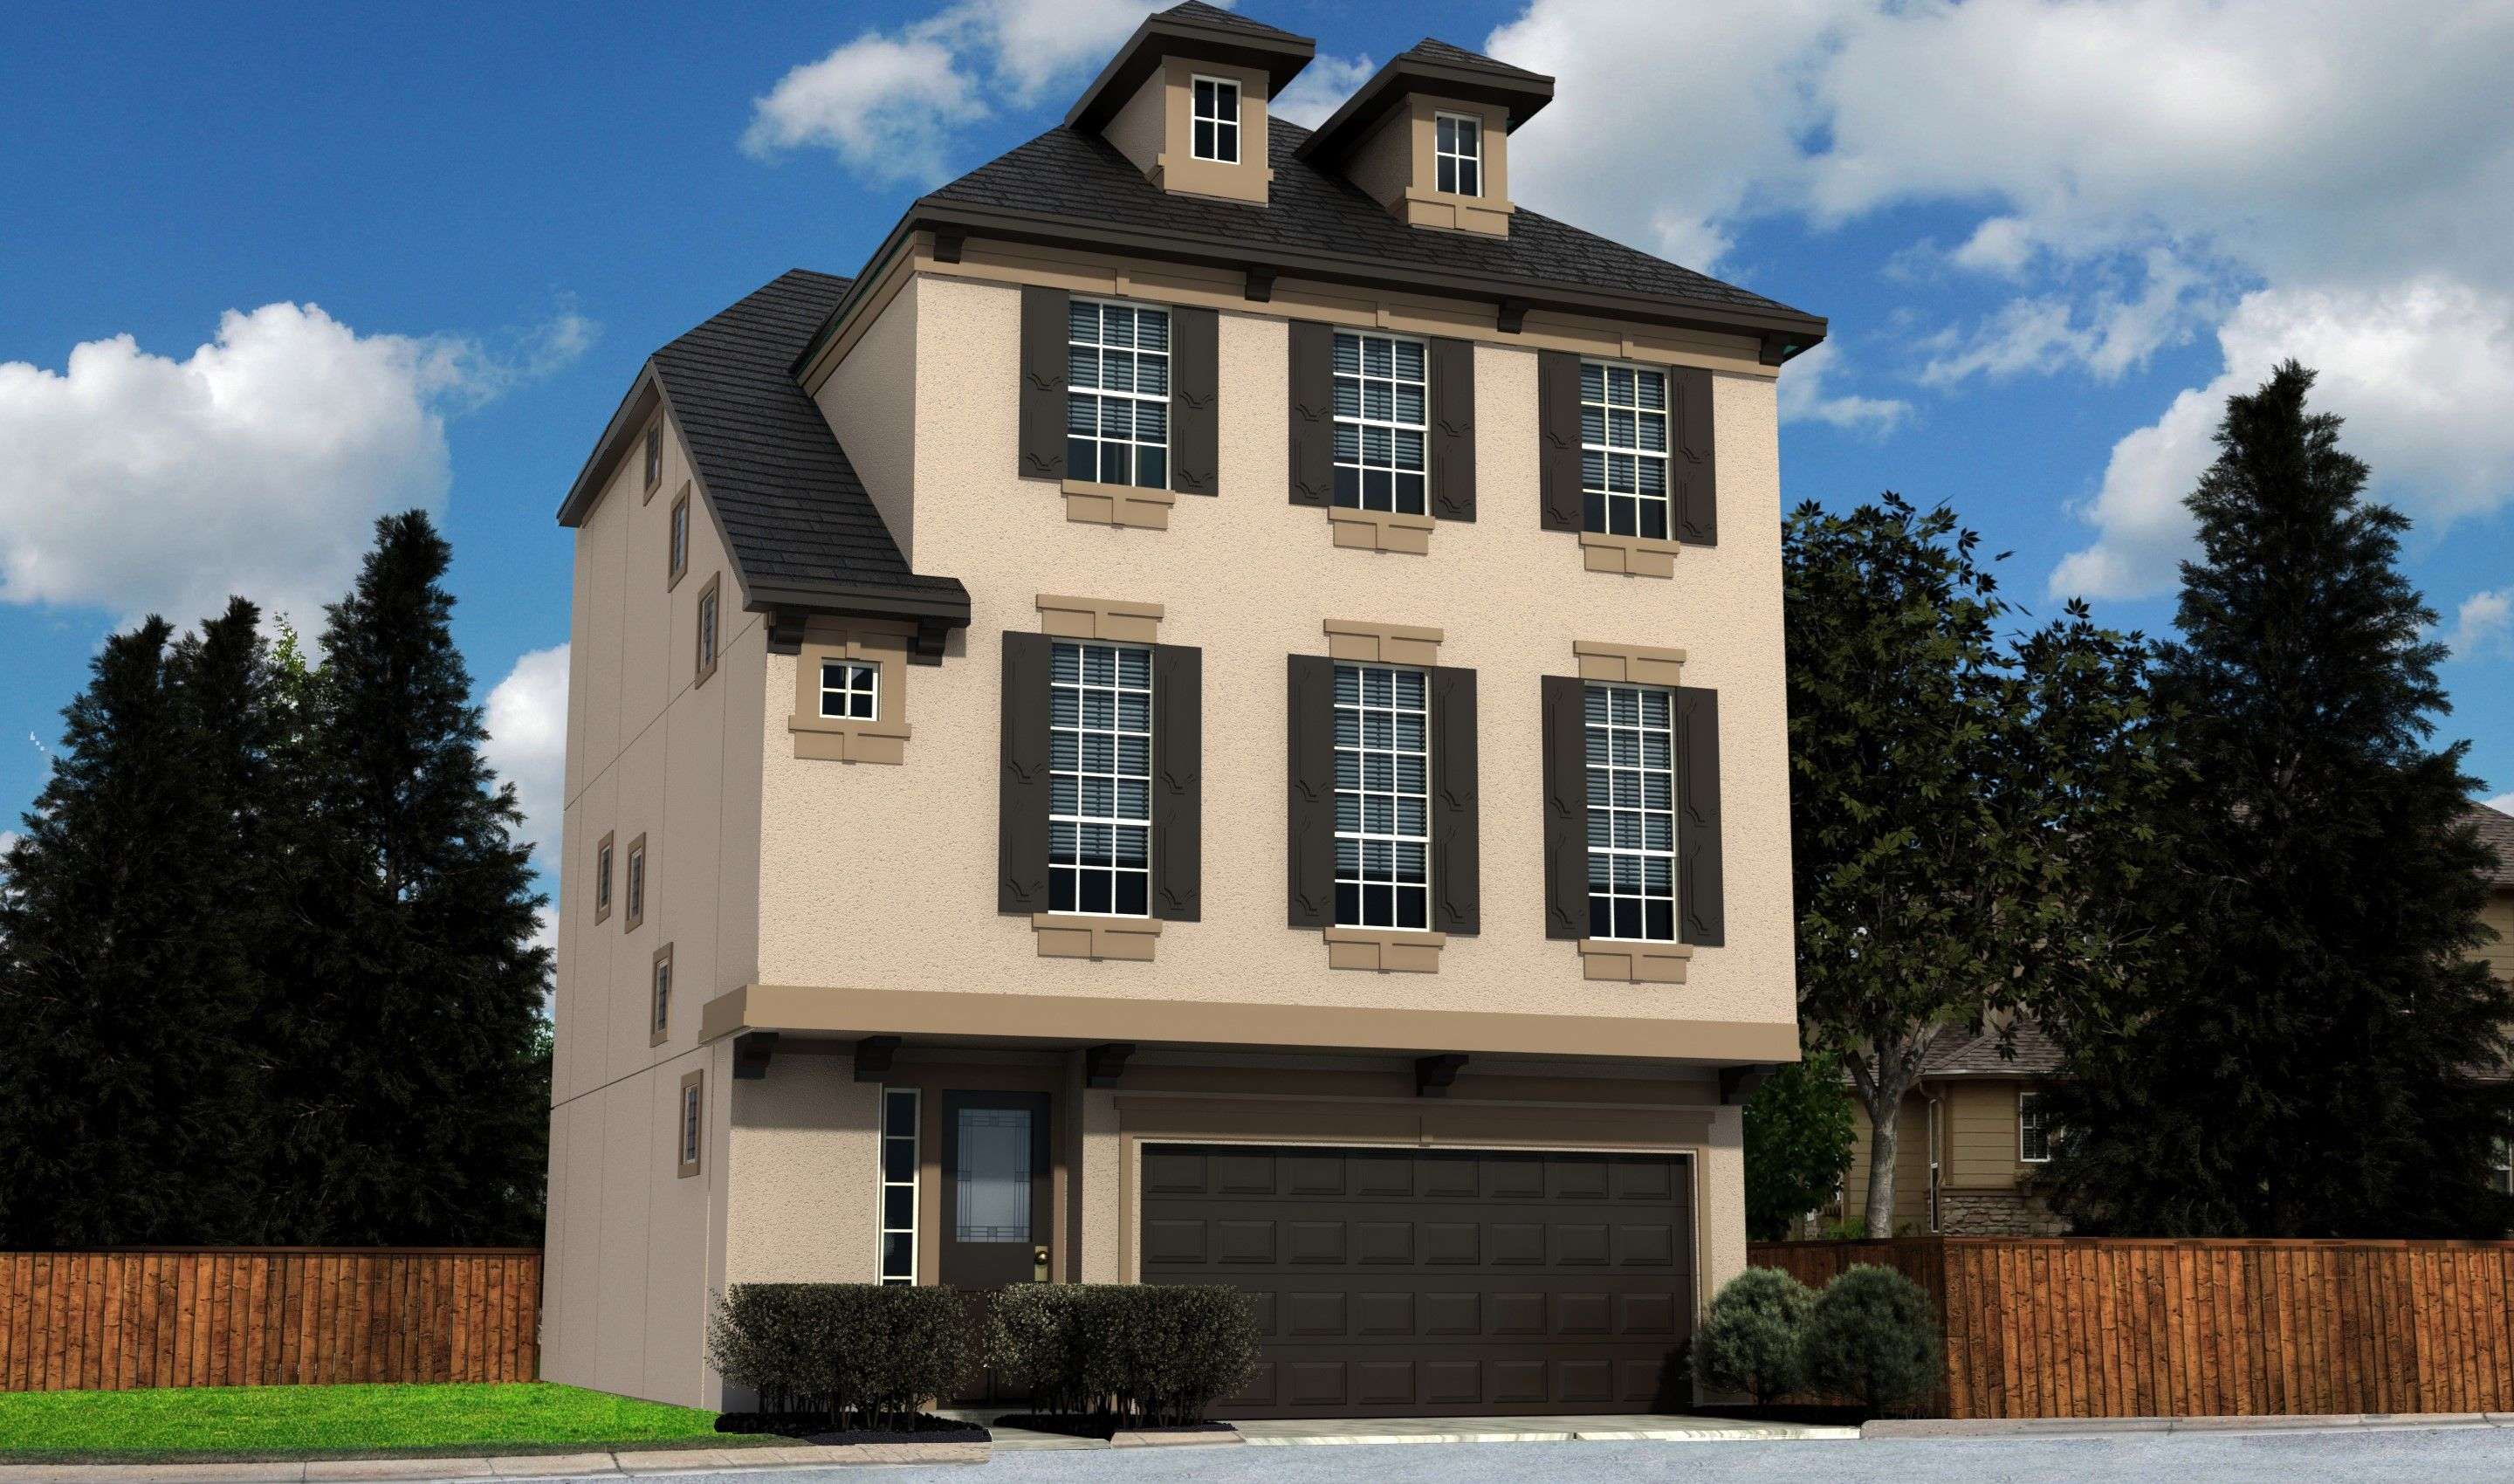 Single Family for Sale at Enclave At Oxford Park - Florence 12215 Oxford Crescent Circle Houston, Texas 77082 United States